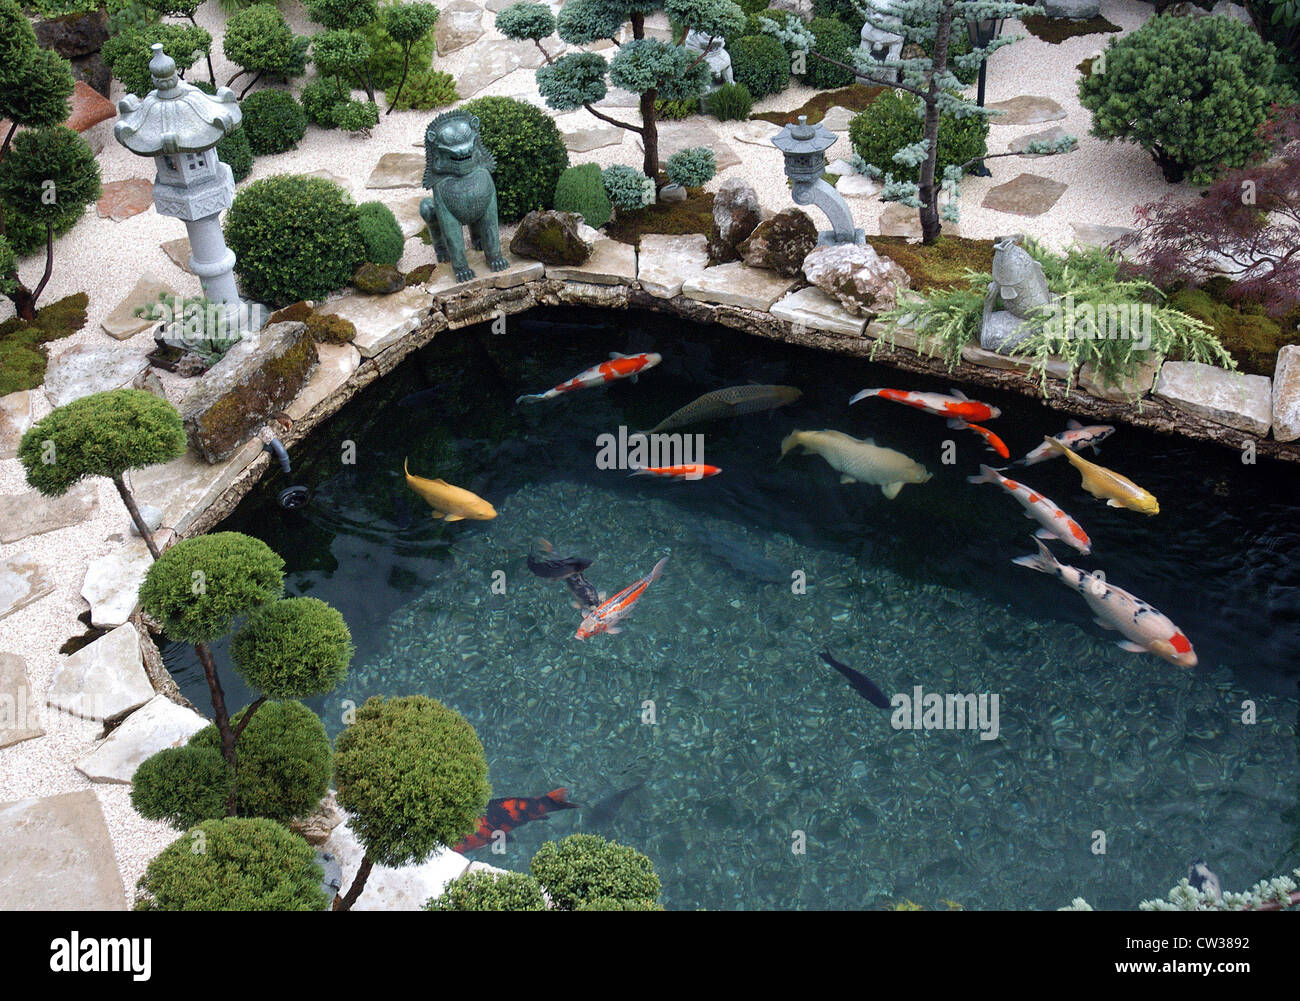 koi pond in reigoldswil switzerland stock photo royalty free image 49859518 alamy. Black Bedroom Furniture Sets. Home Design Ideas